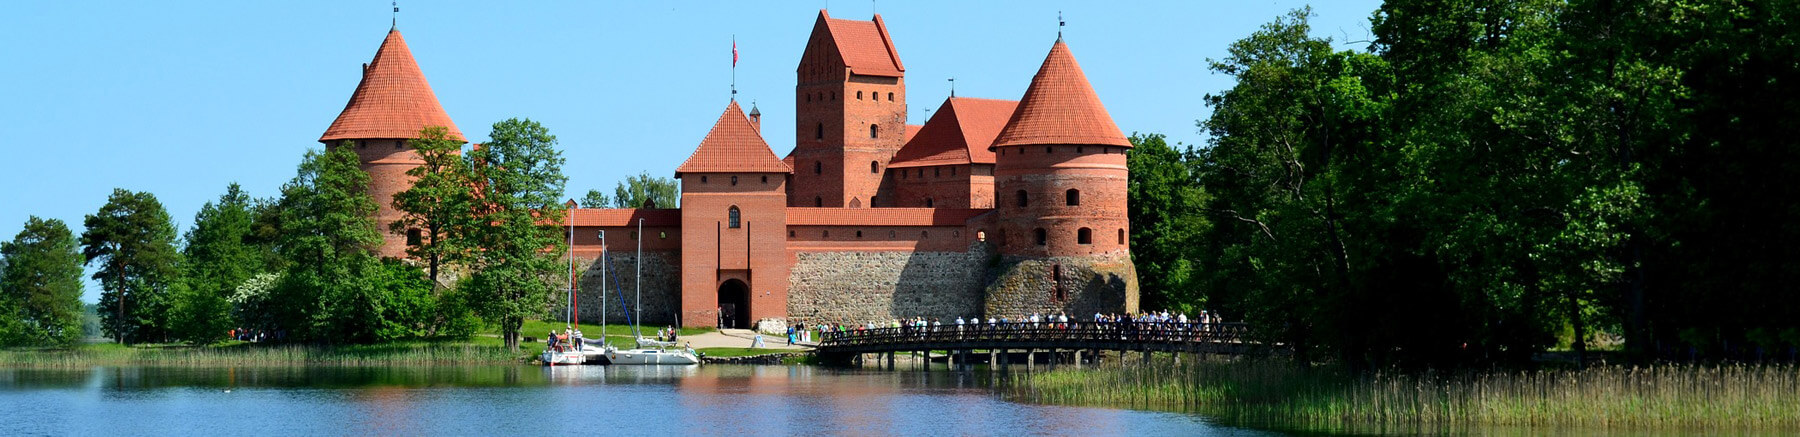 Trakai Island Castle in Lithuania with Lake Galvė in the foreground